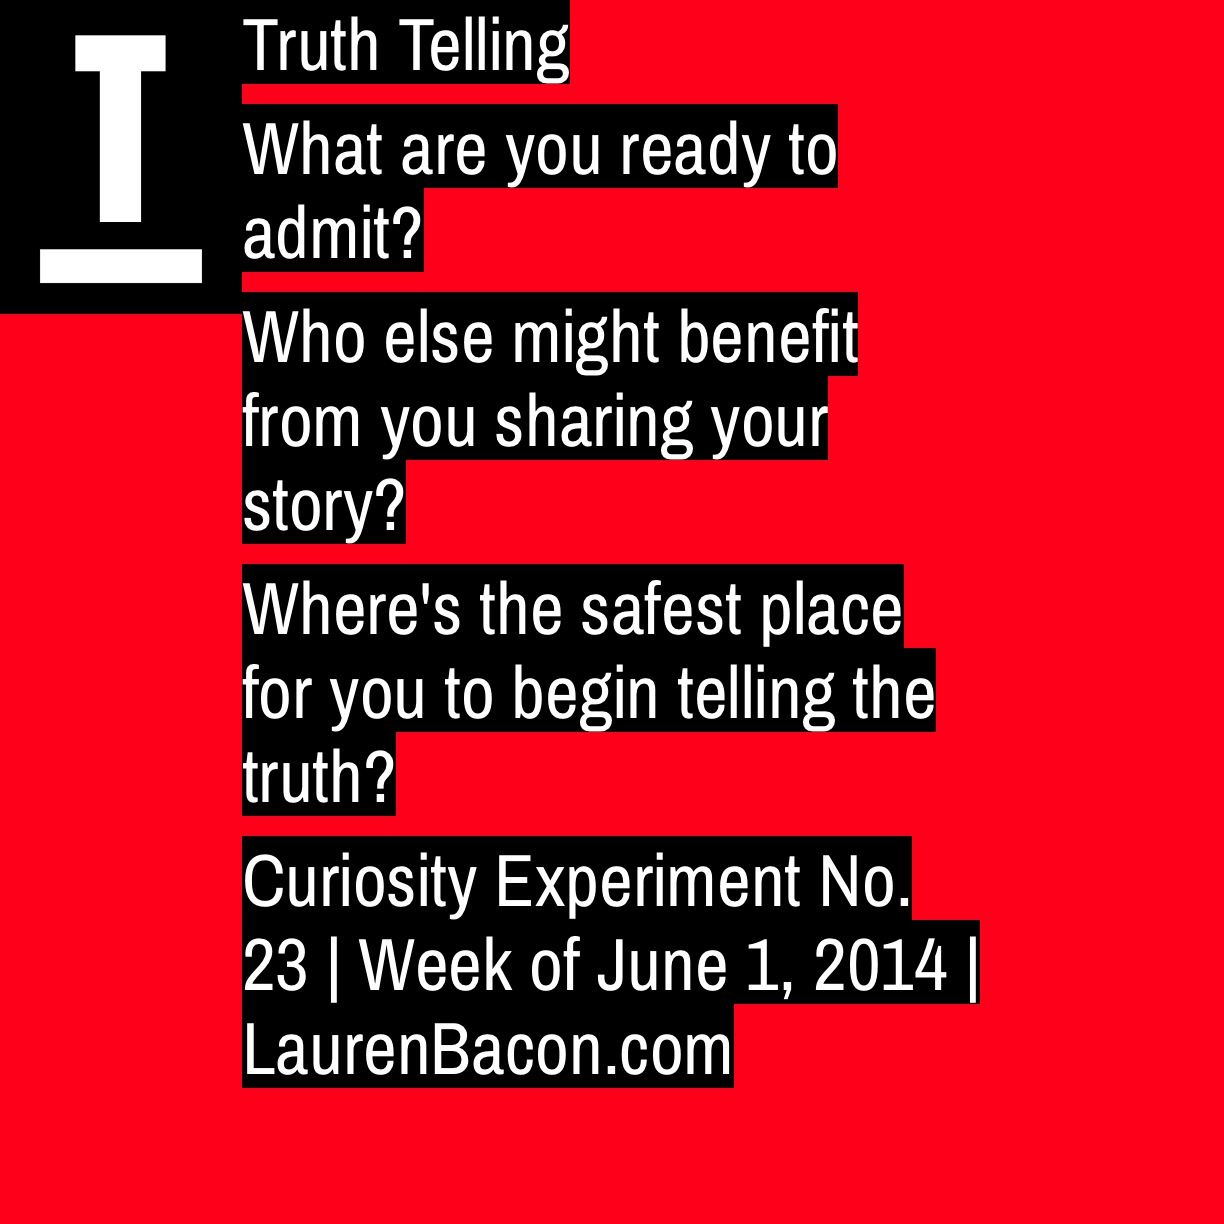 What Vulnerable Truths Are You Ready To Tell